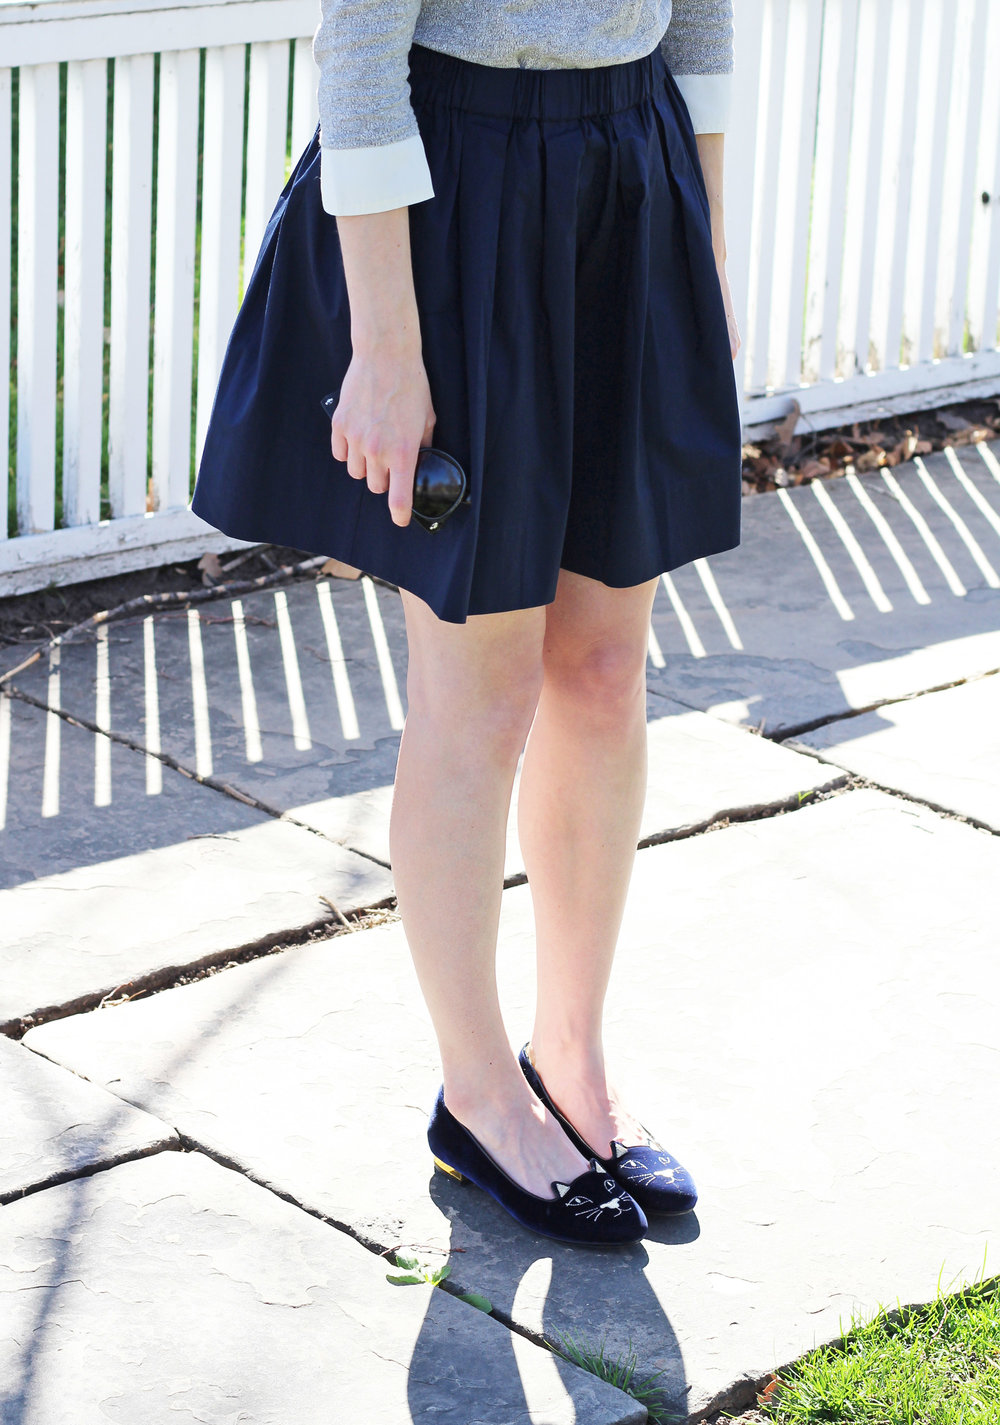 Charlotte Olympia 'Kitty' flats outfit with navy skirt — Cotton Cashmere Cat Hair